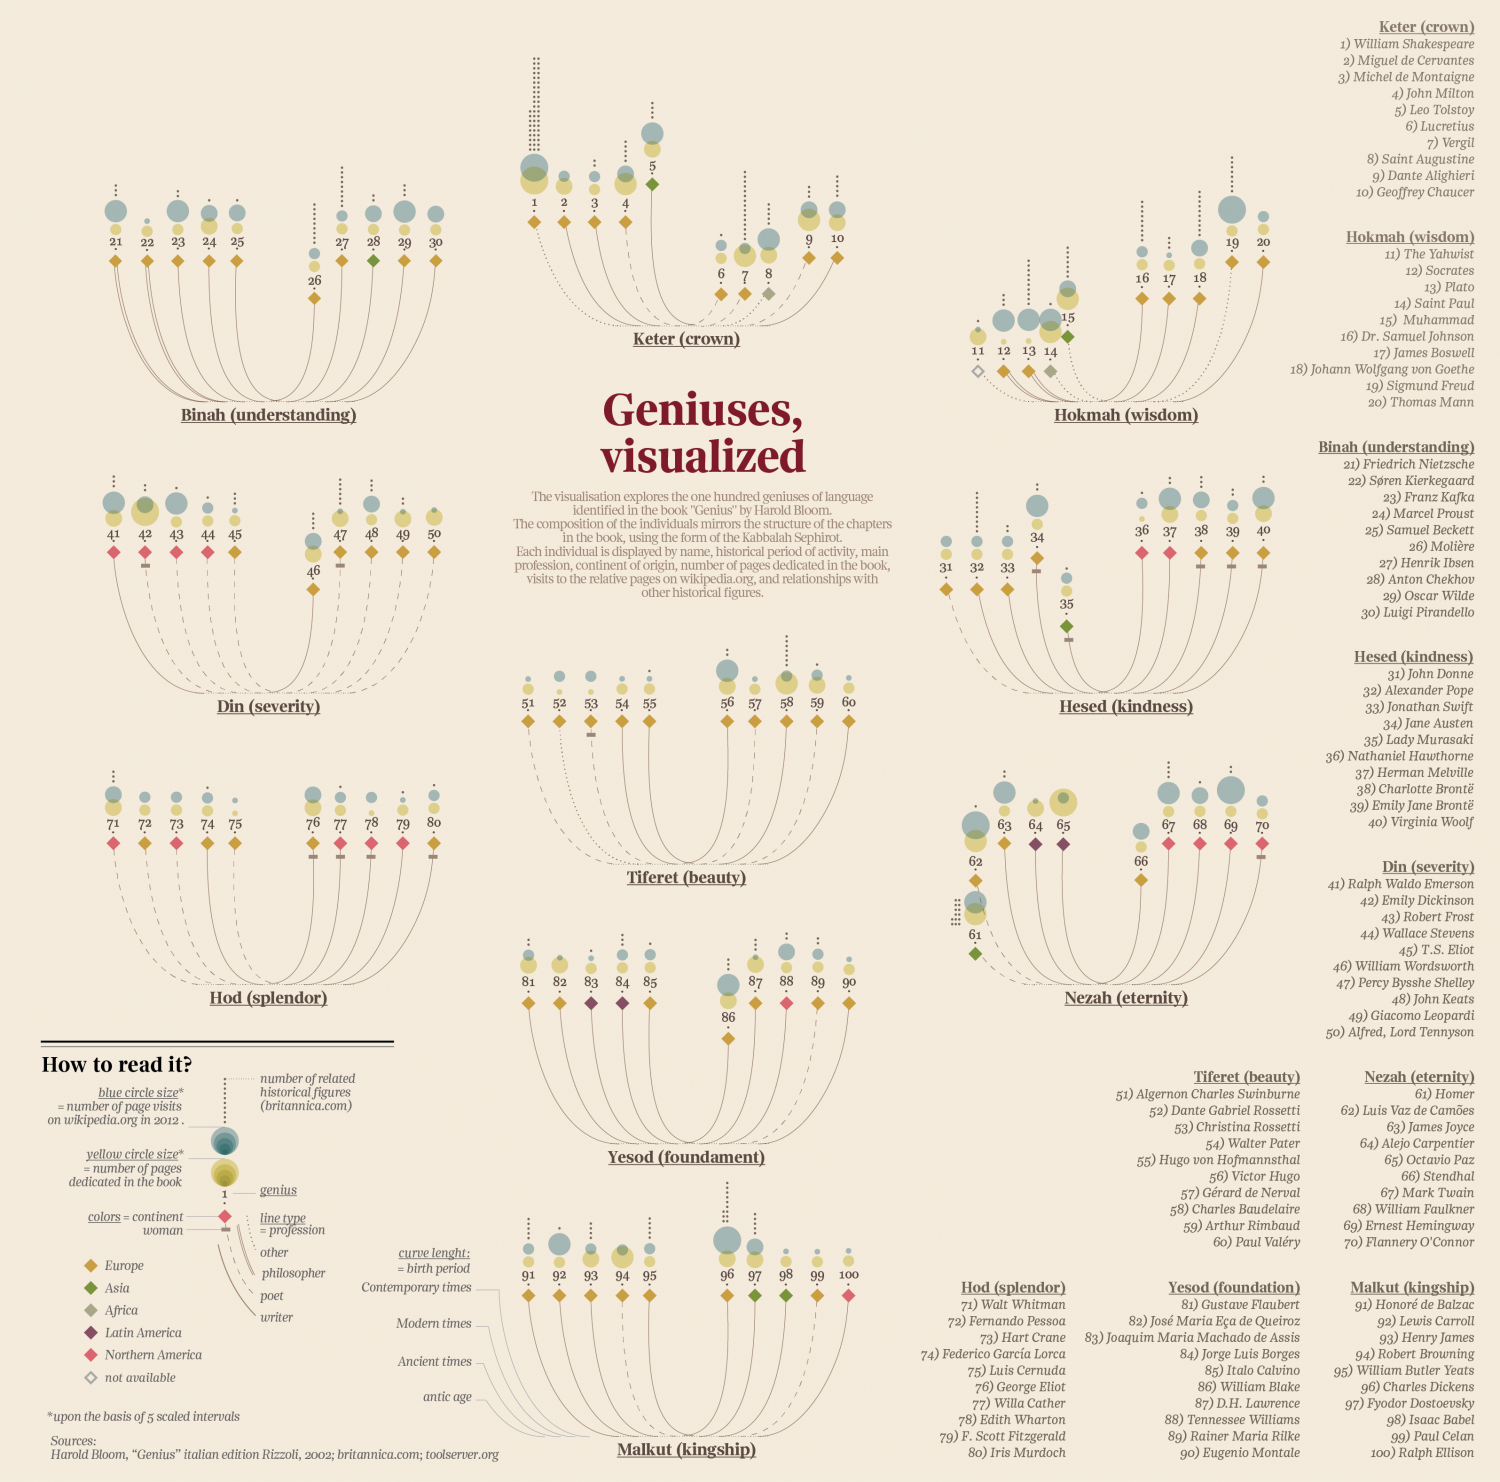 Geniuses, visualized Infographic